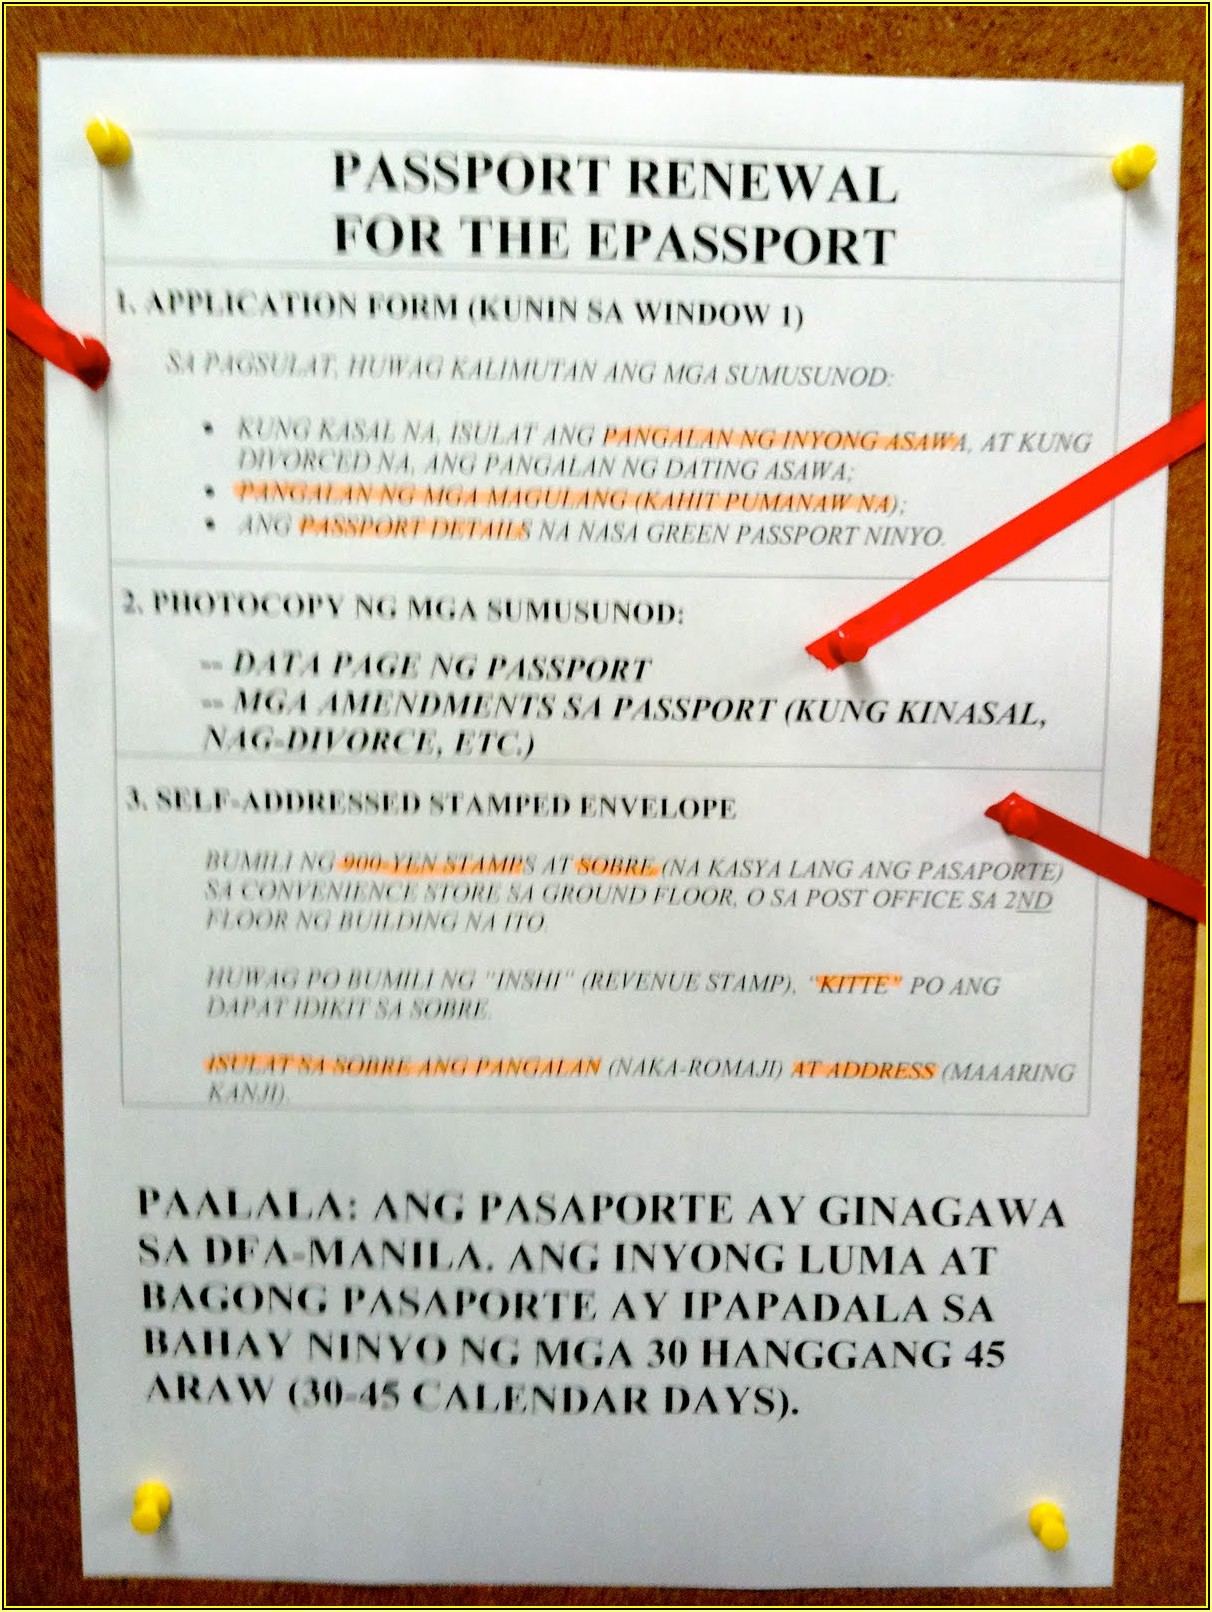 Form For Passport Renewal At Post Office